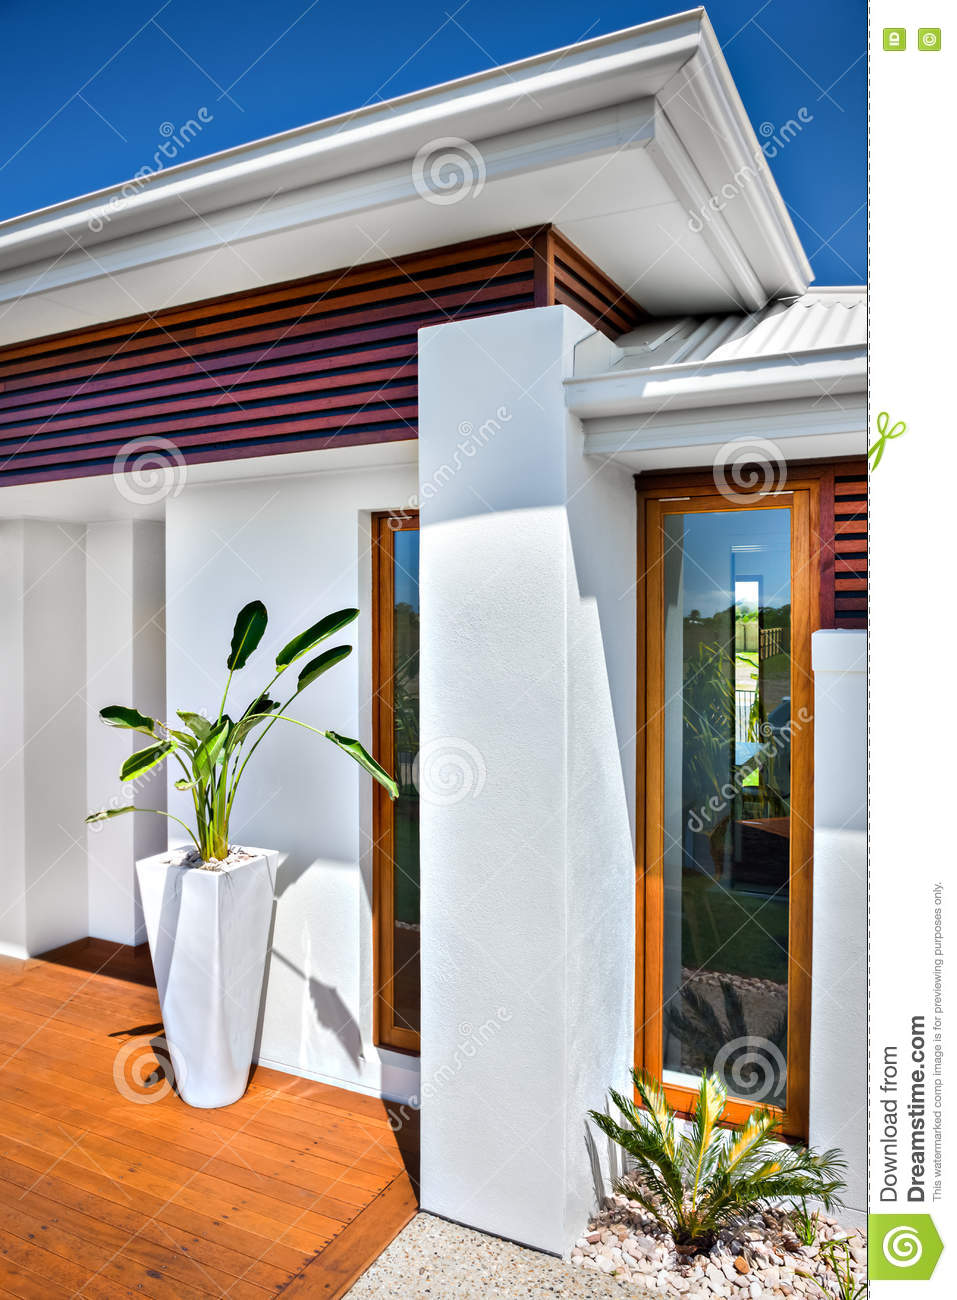 Close up of a luxury house entrance with a facade that has a wooden floor there are two glass windows near to the entrance and green plant in a white vase